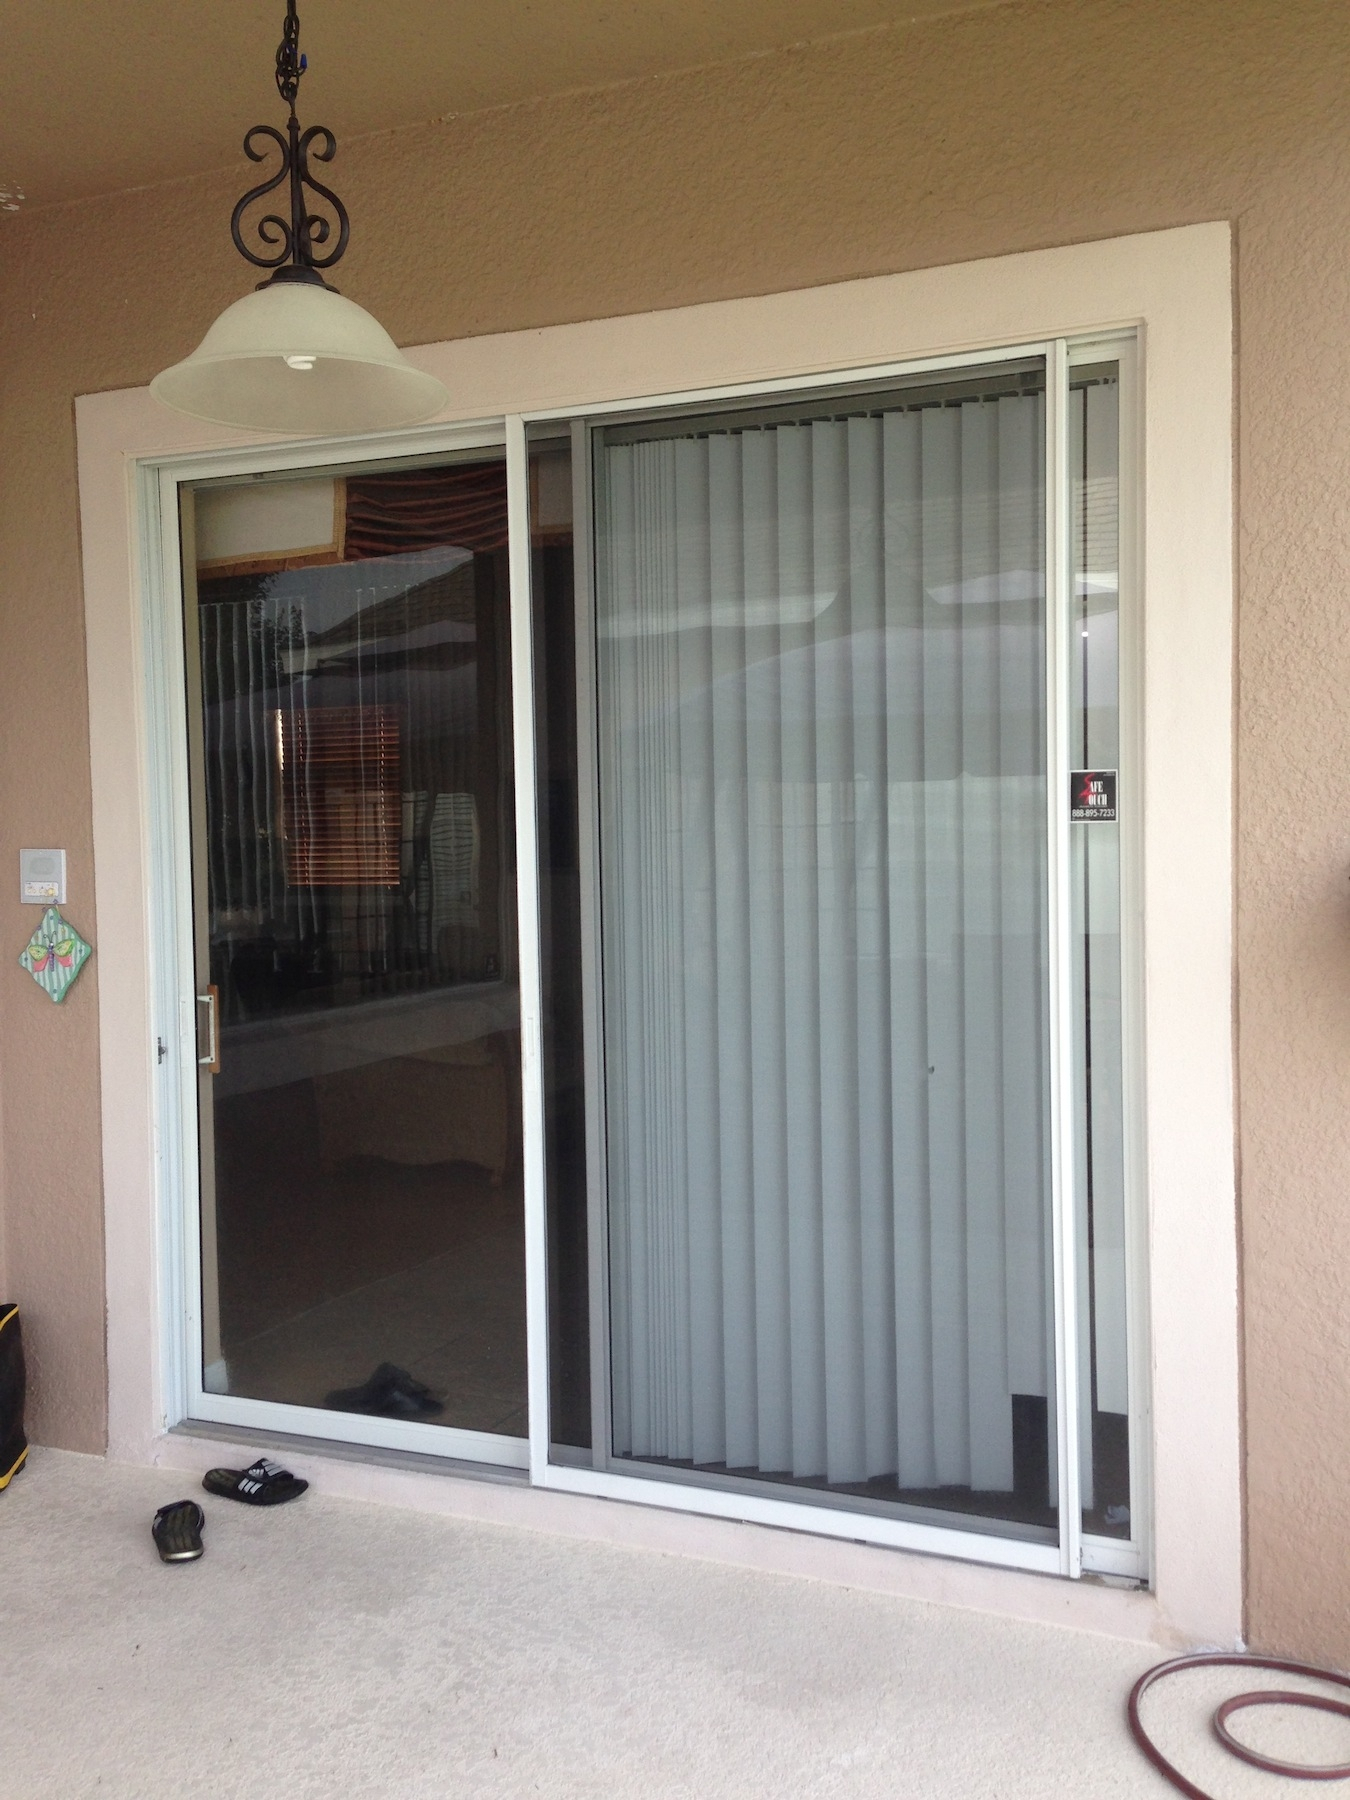 Privacy Screen For Sliding Glass Door Exterior Doors And Screen Doors pertaining to proportions 1350 X 1800